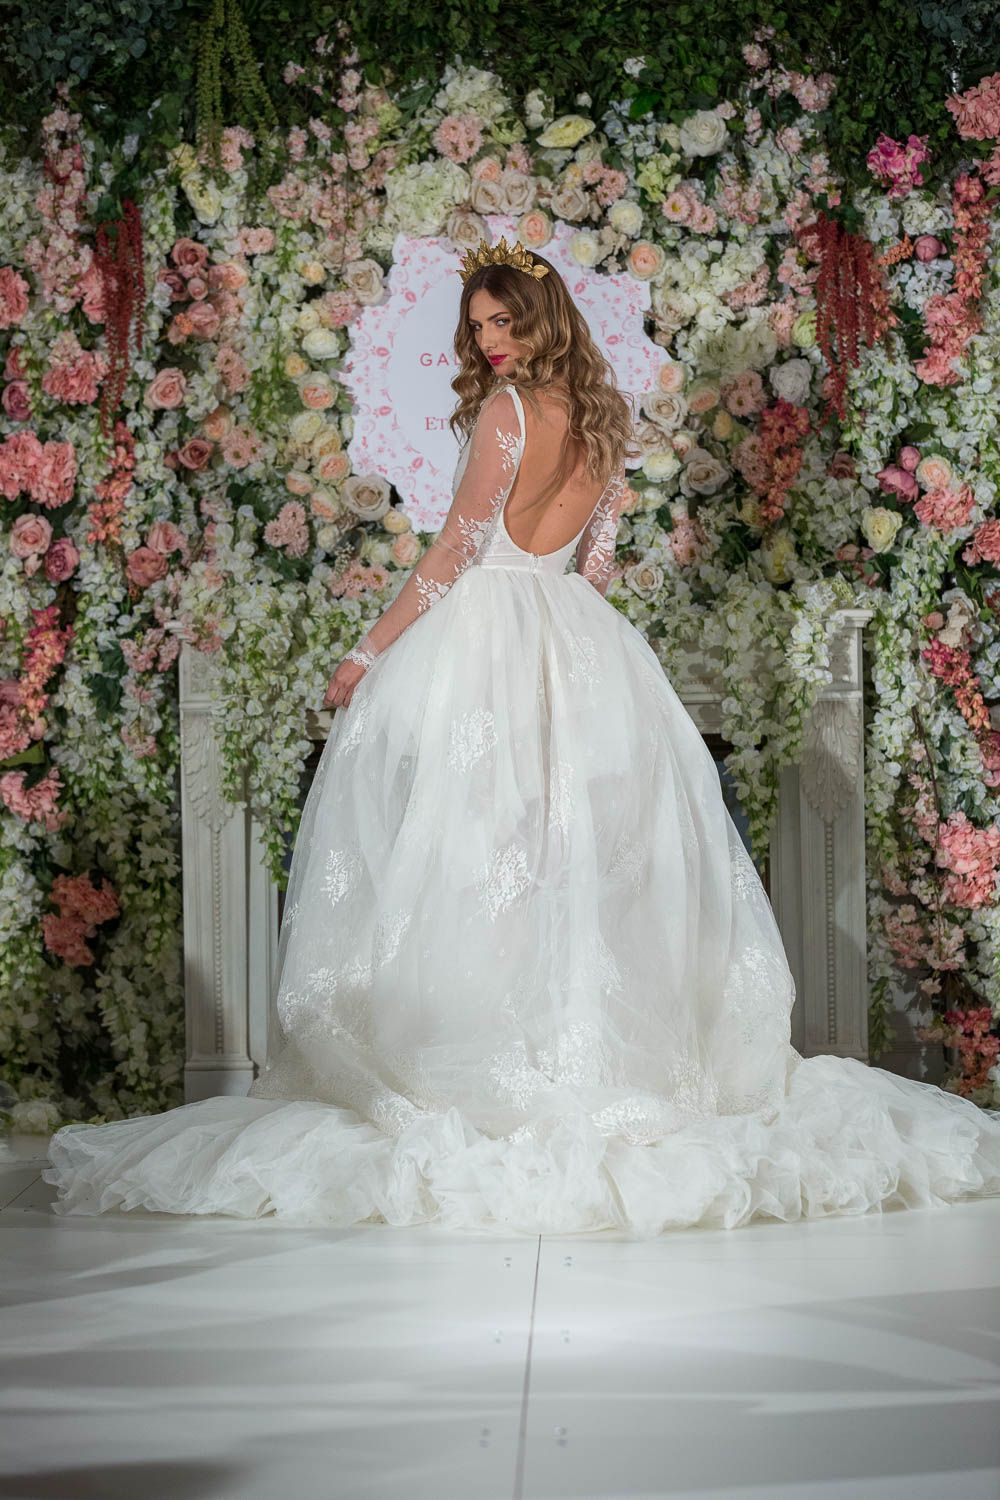 Wedding dress trunk show  Eternal Bridal Trunk show  Wedding  Pinterest  Galia lahav